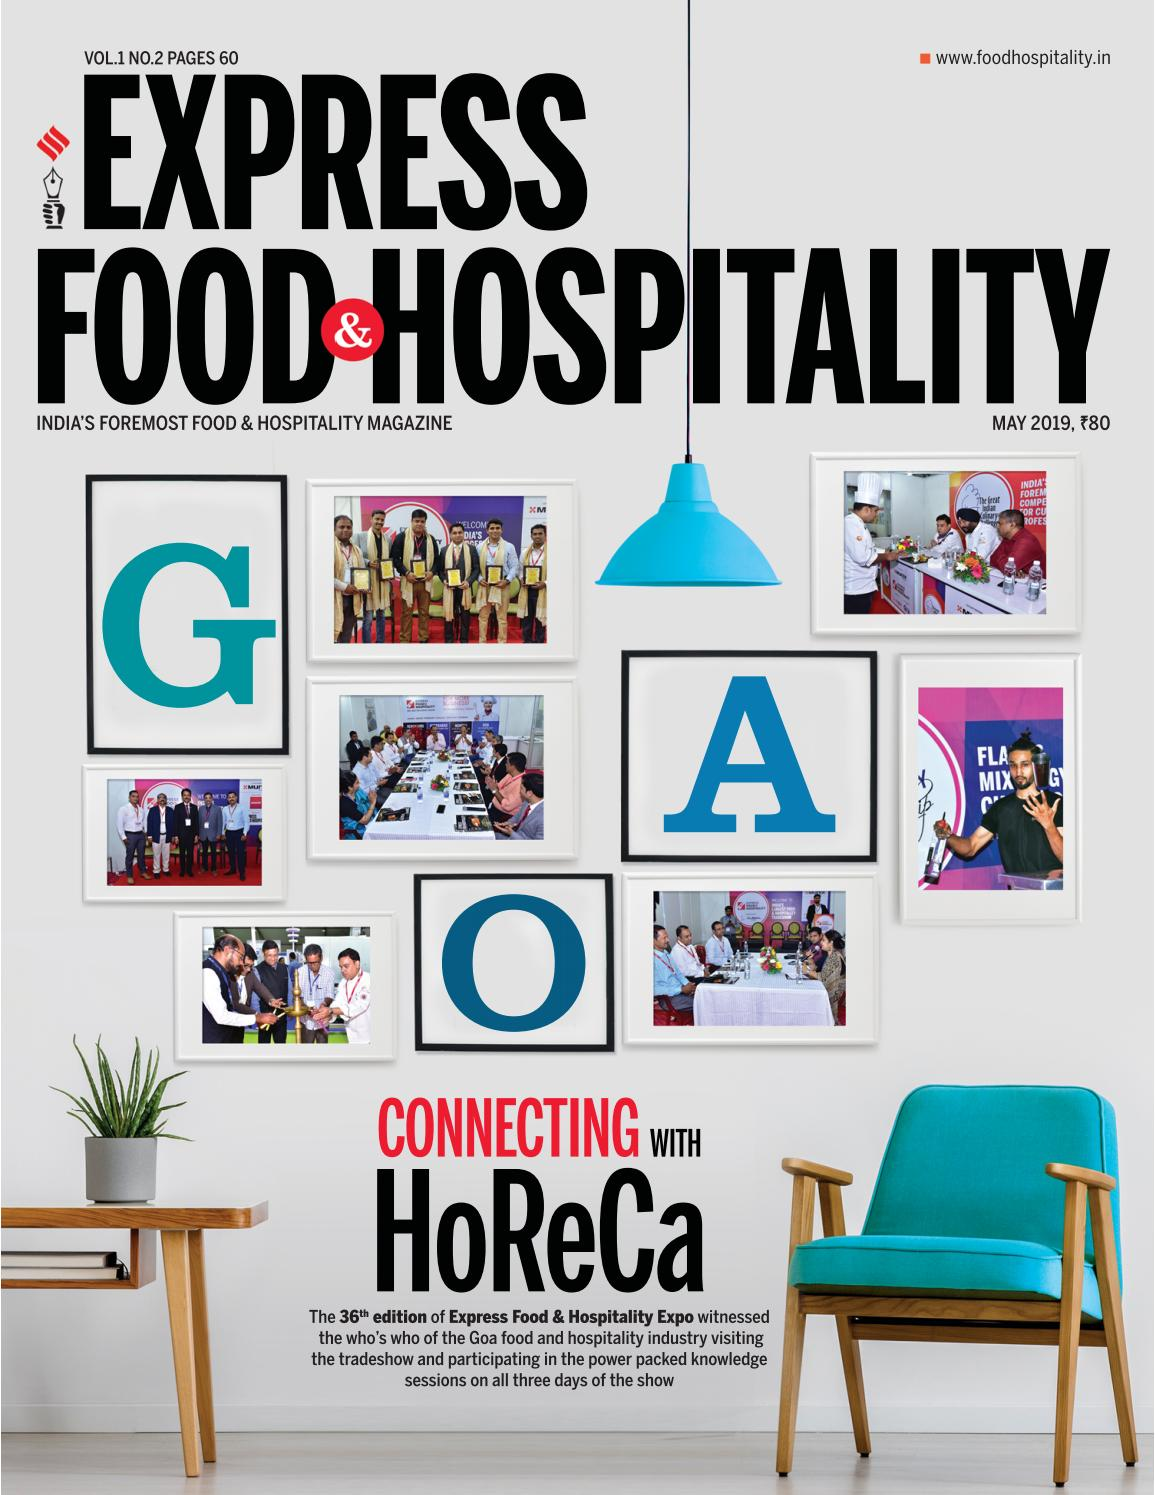 Express Food and Hospitality (Vol 1 No 2) May, 2019 by